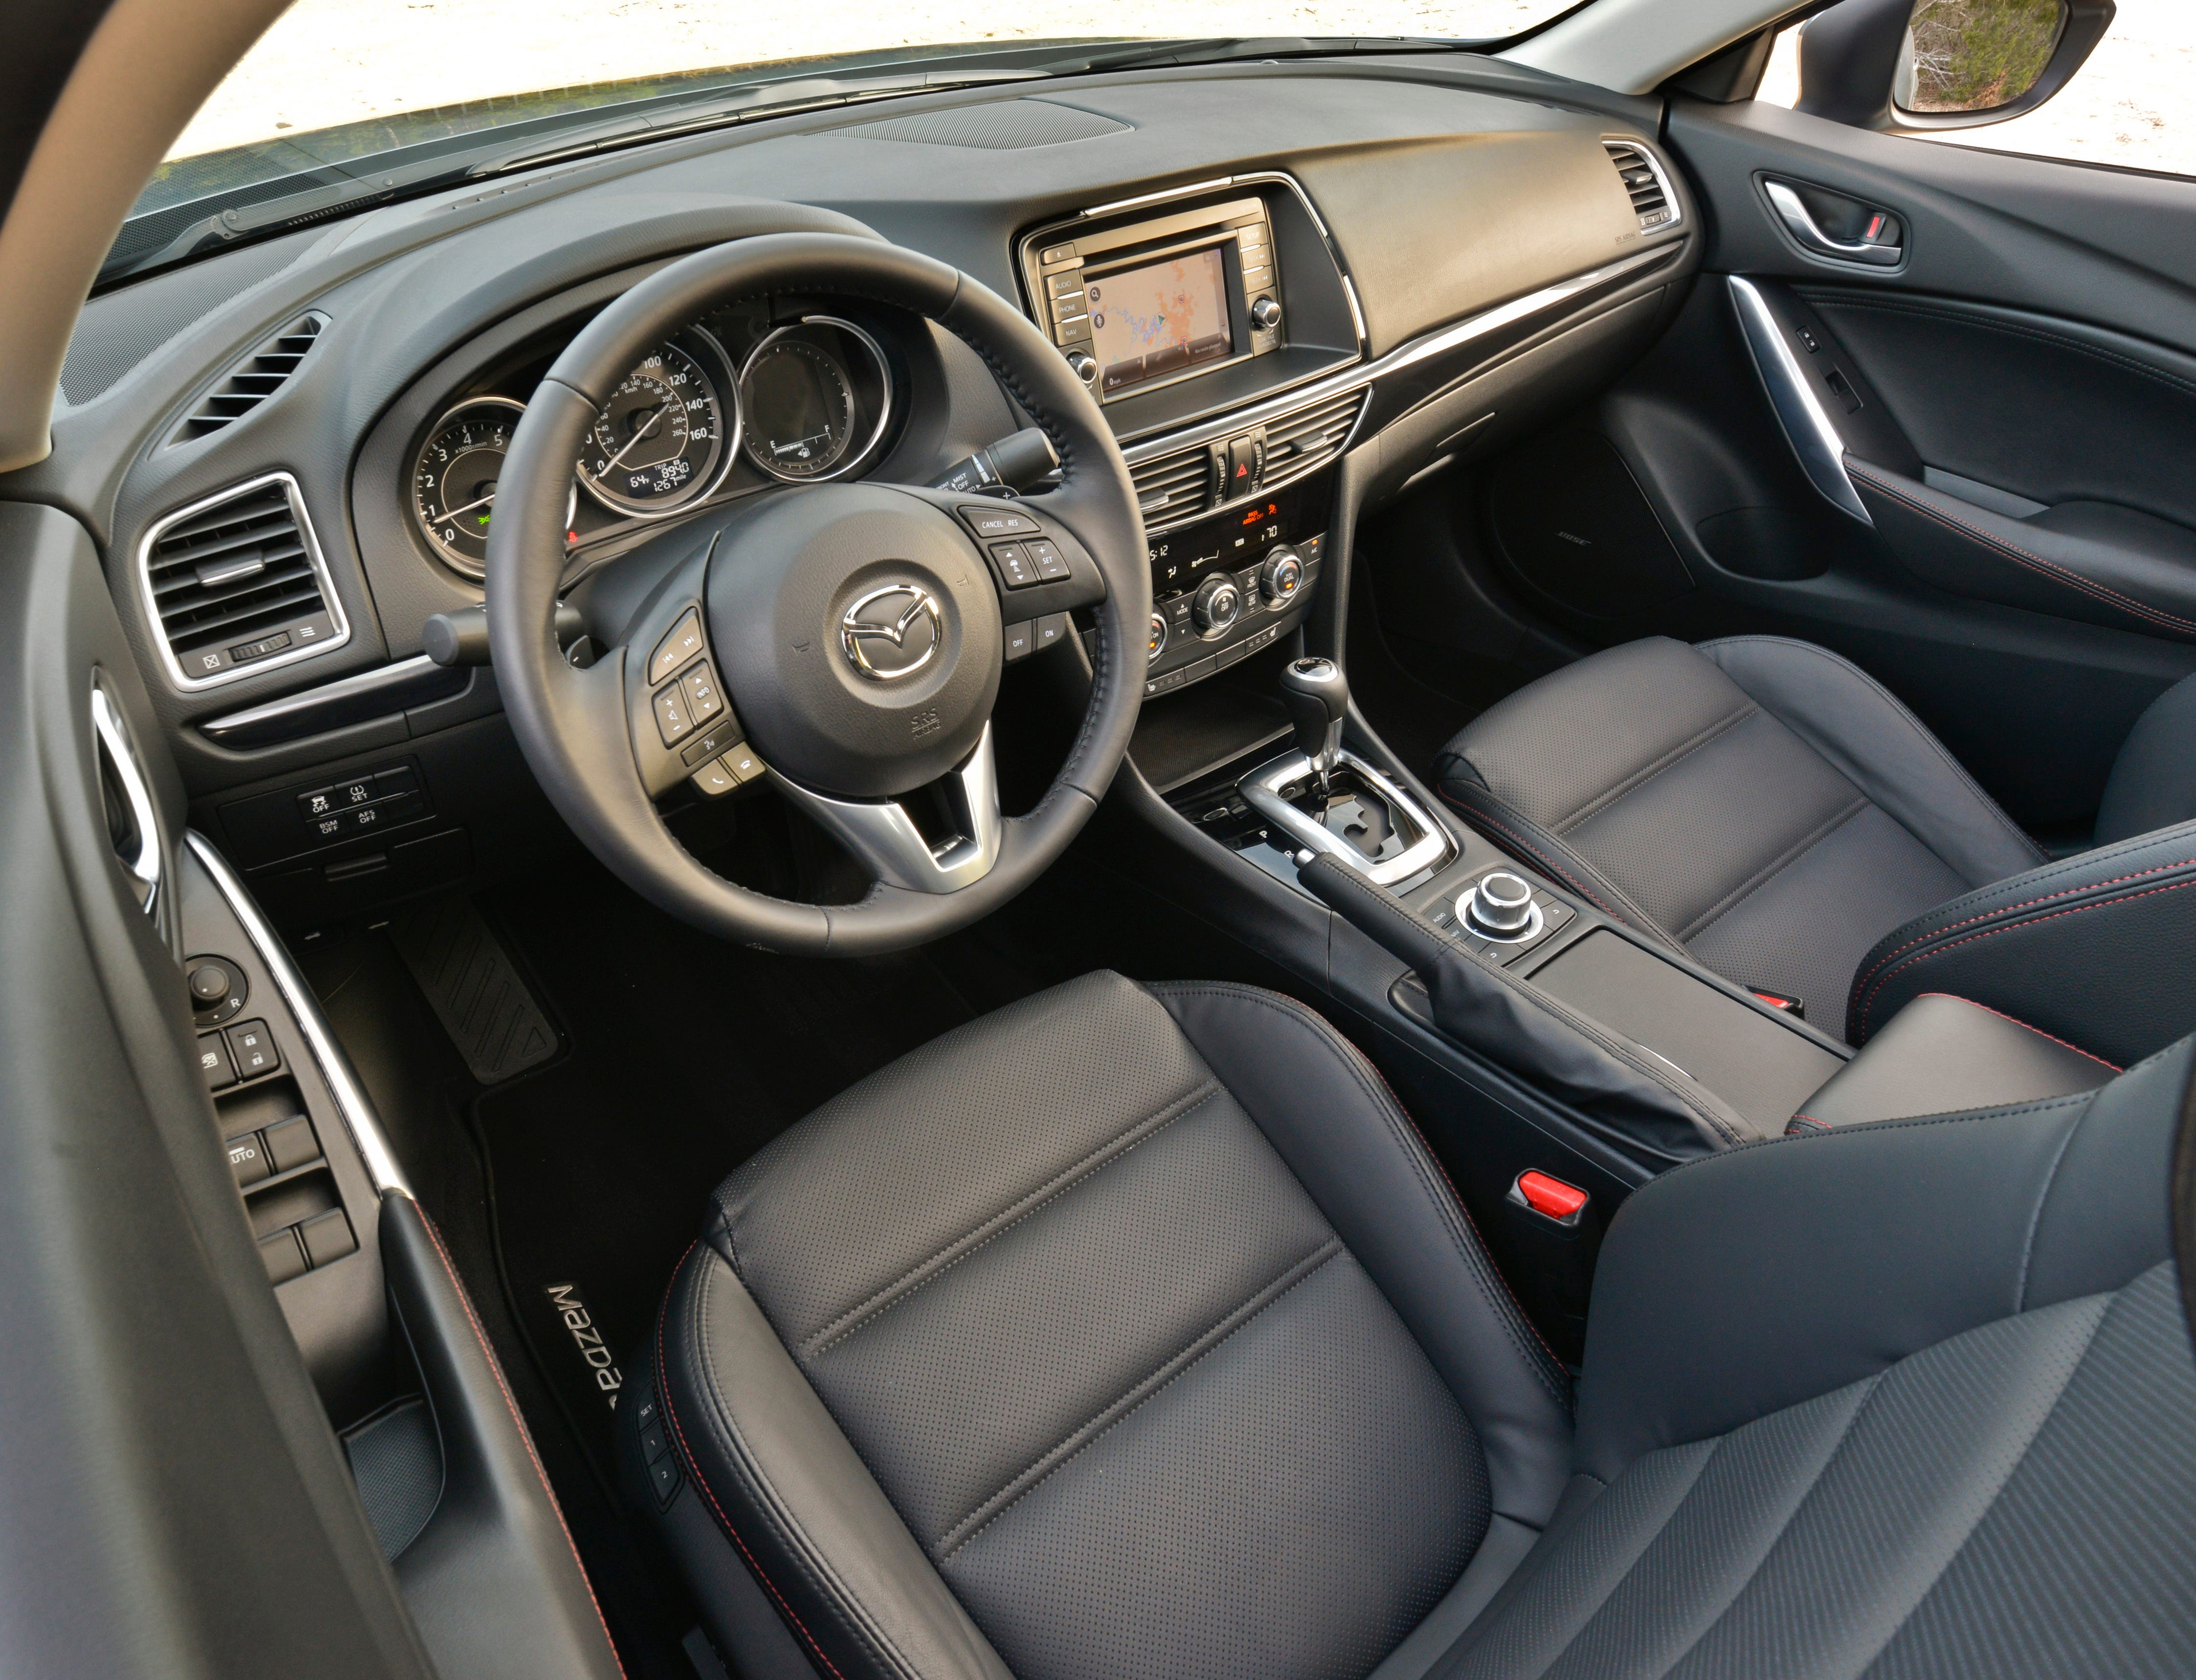 The interior of the new Mazda6 is an upgraded design that does not fall short of the classy look for which Mazda has been known.